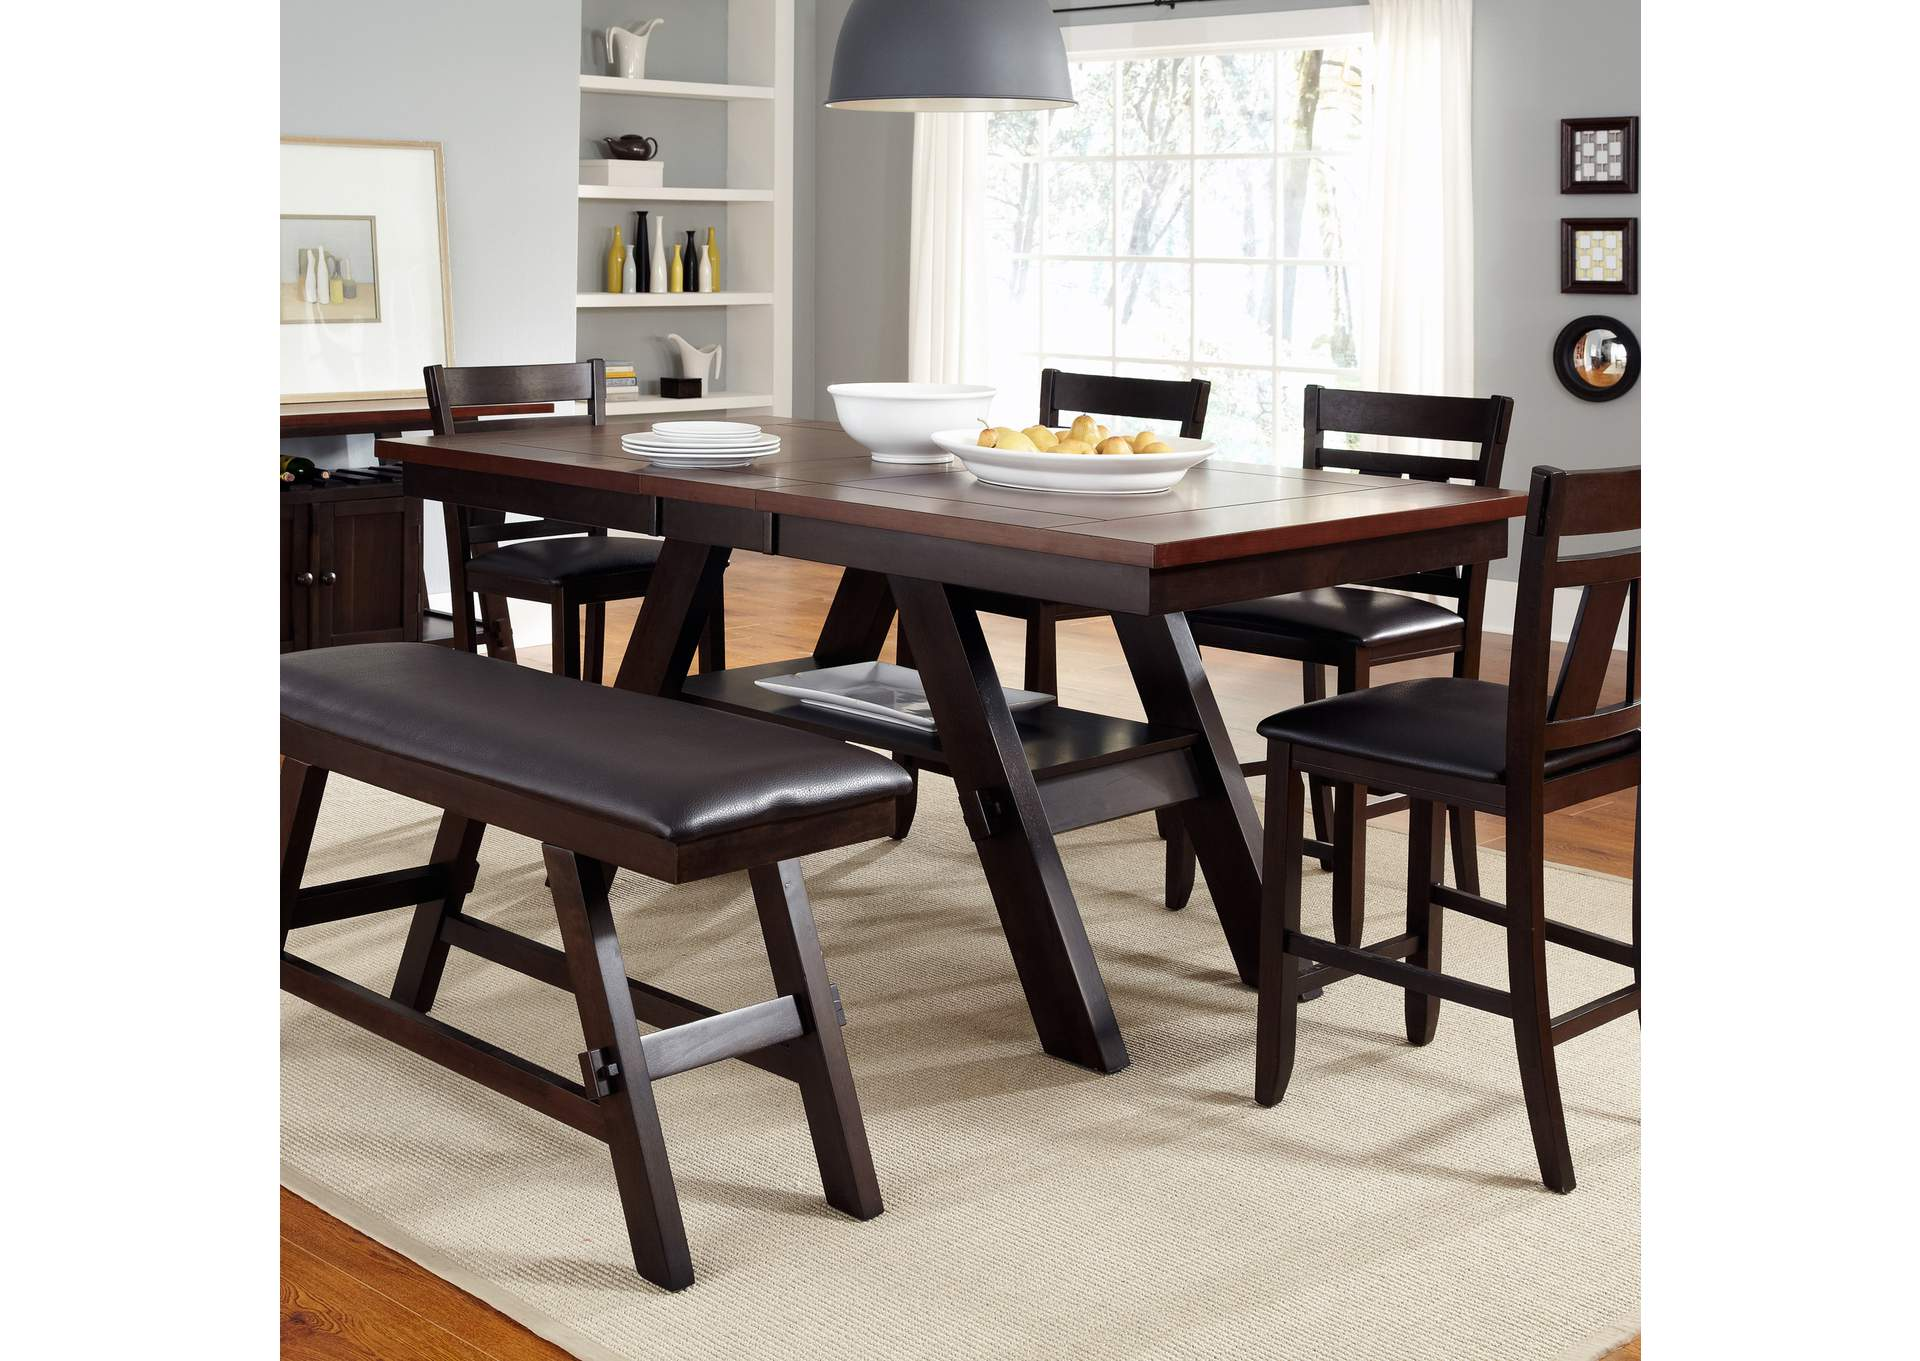 Lawson Gathering Table w/Bench and 4 Splat Back Counter Chairs,Liberty